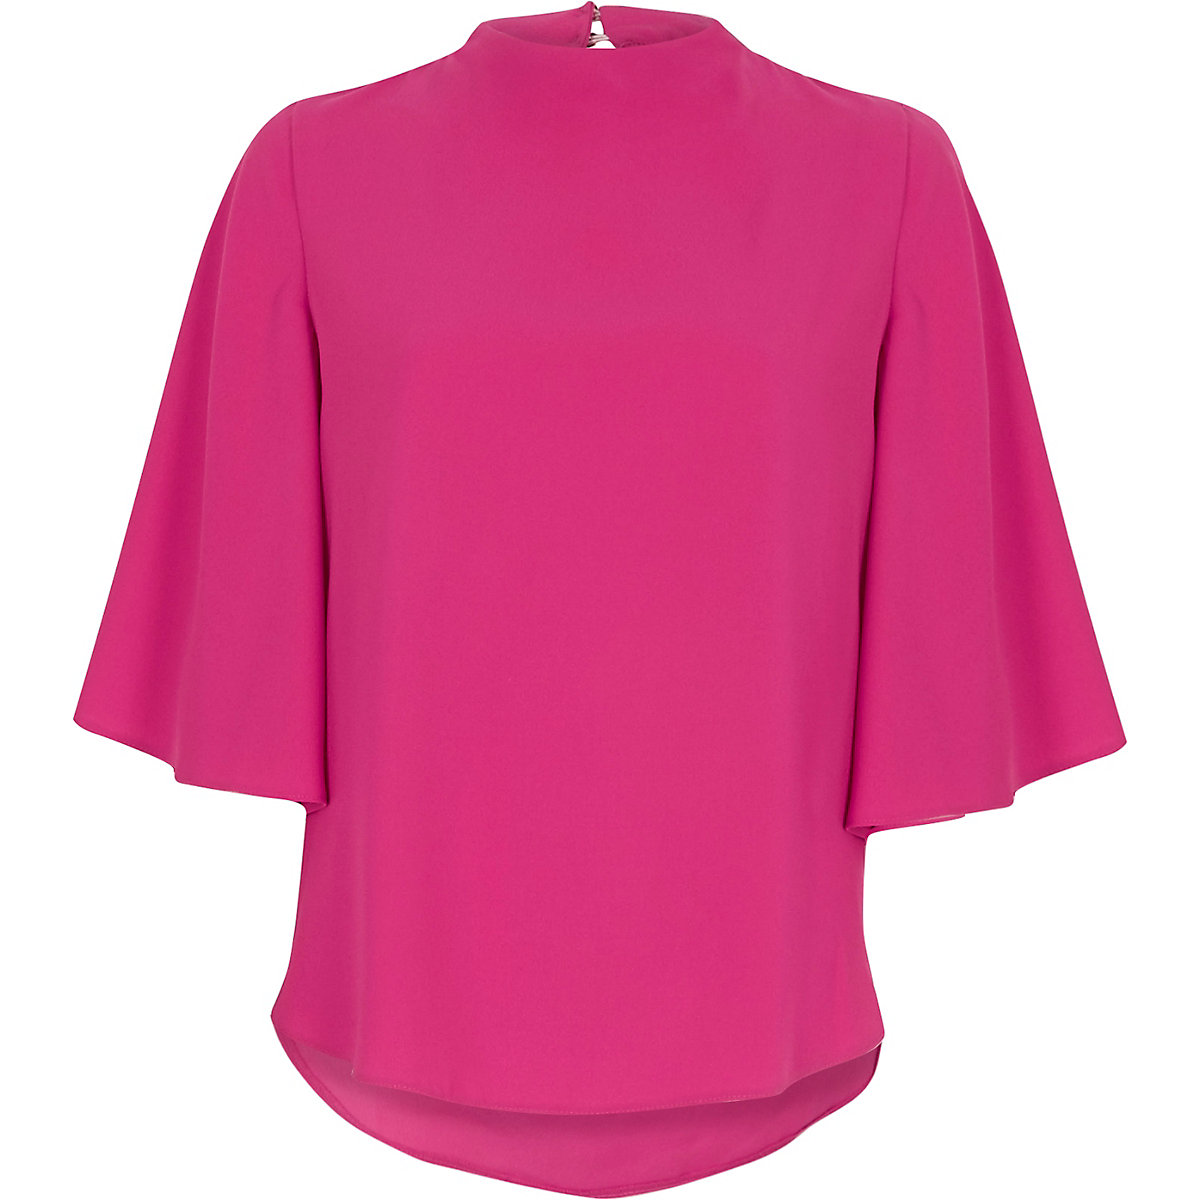 Pink high neck cape sleeve top